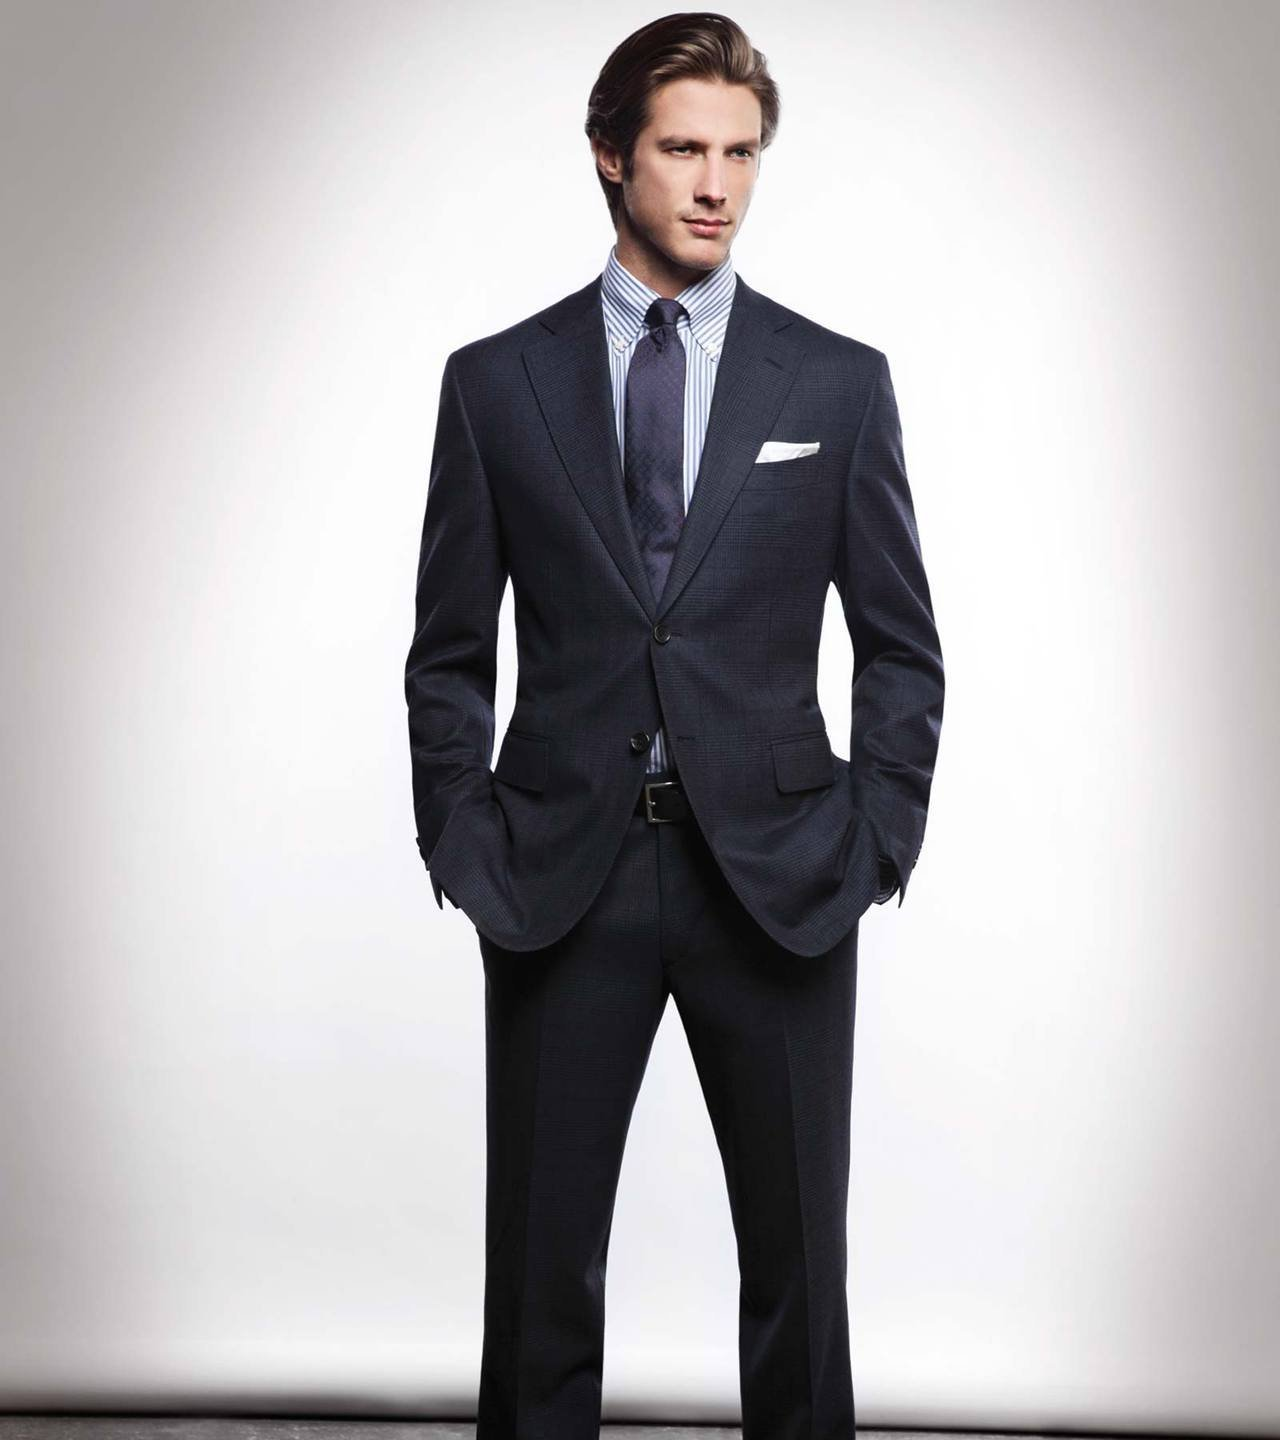 Rules About Wearing A Suit That Every Man Should Know